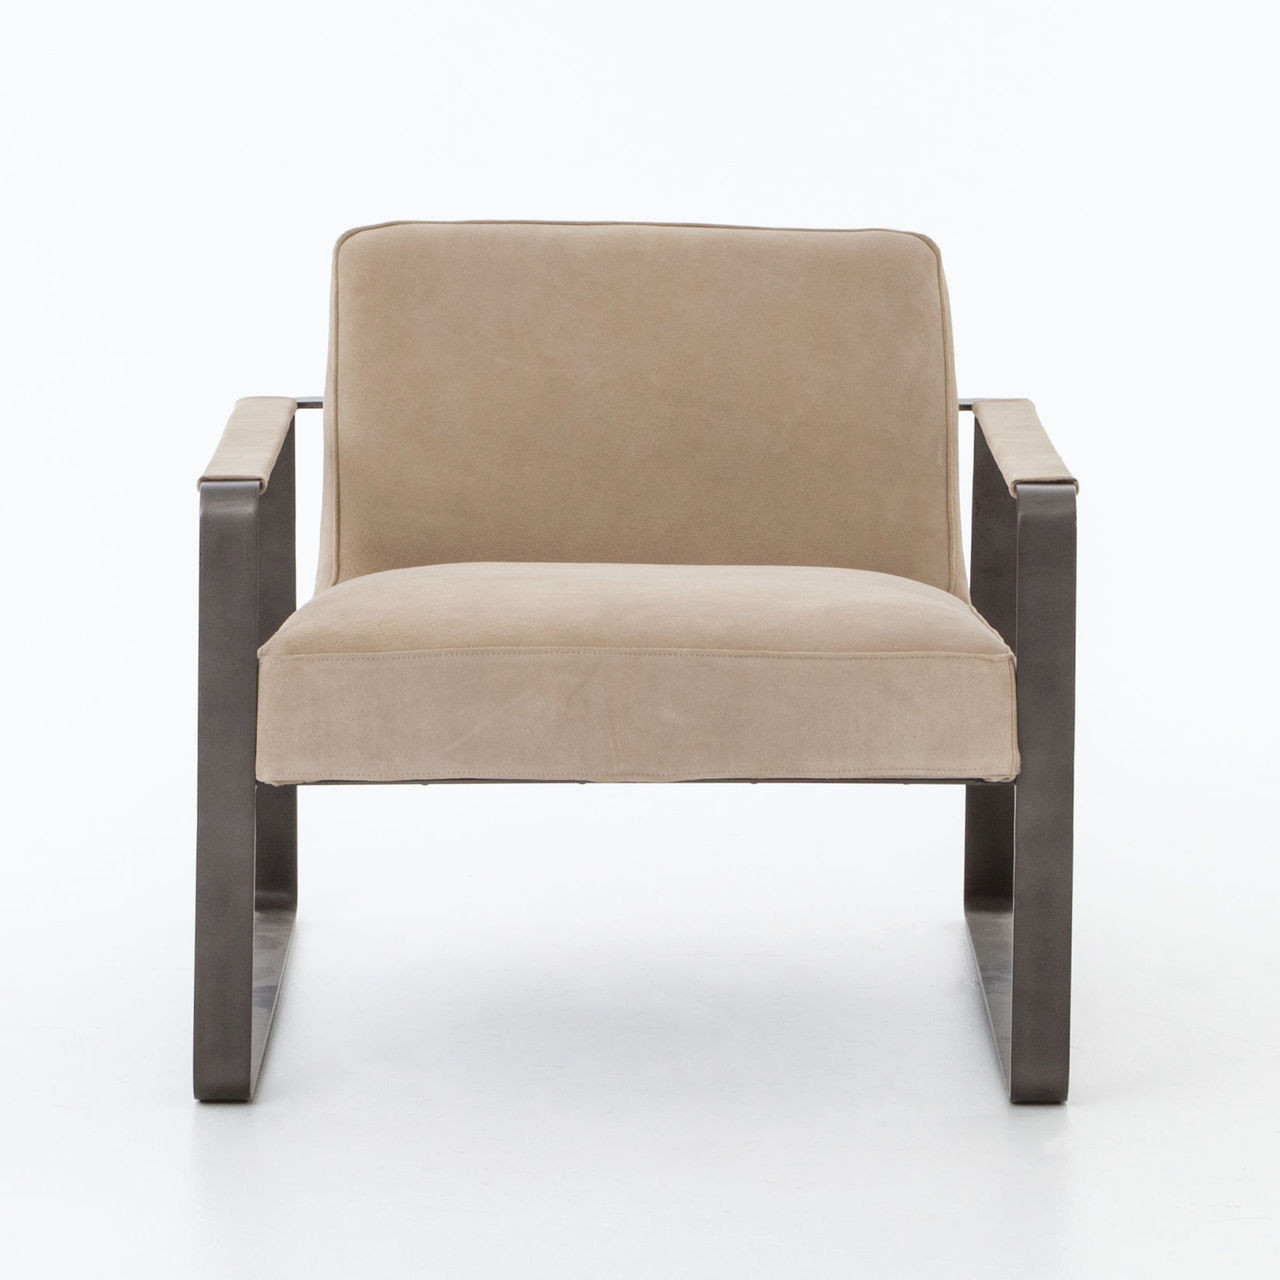 lars beige nubuck leather lounge arm chair - Leather Lounge Chair